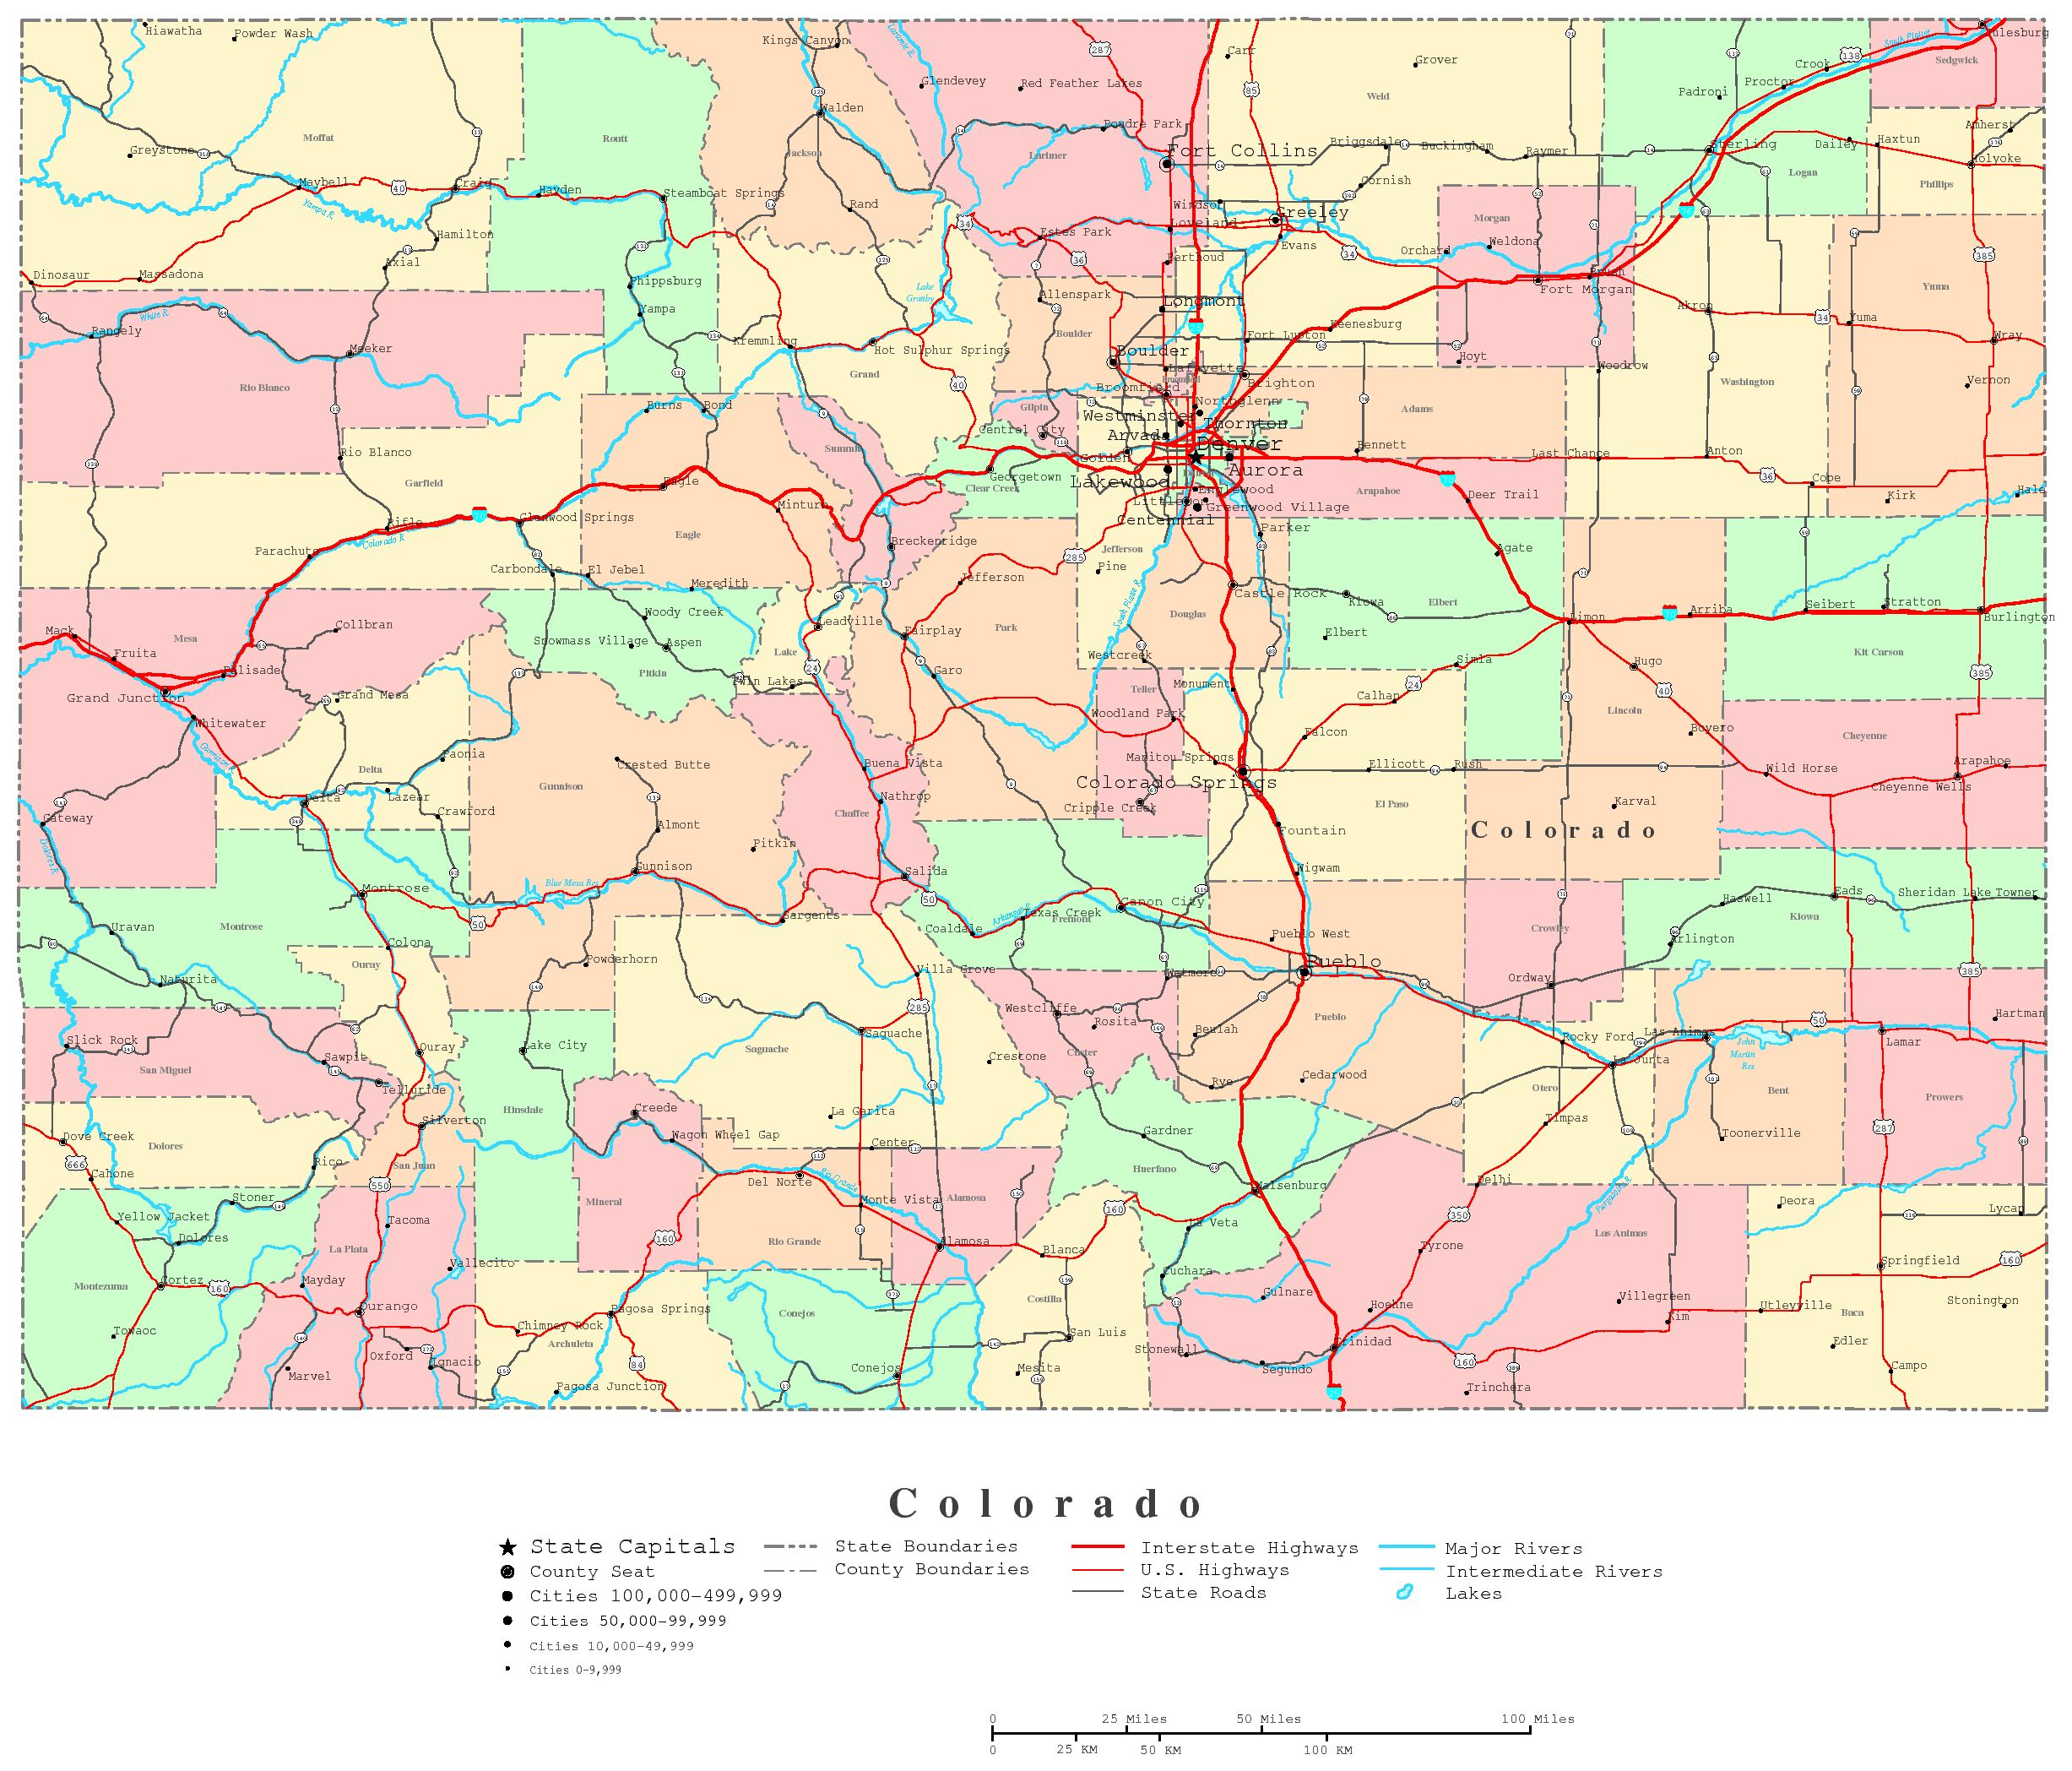 Colorado Printable Map - Coloradomap